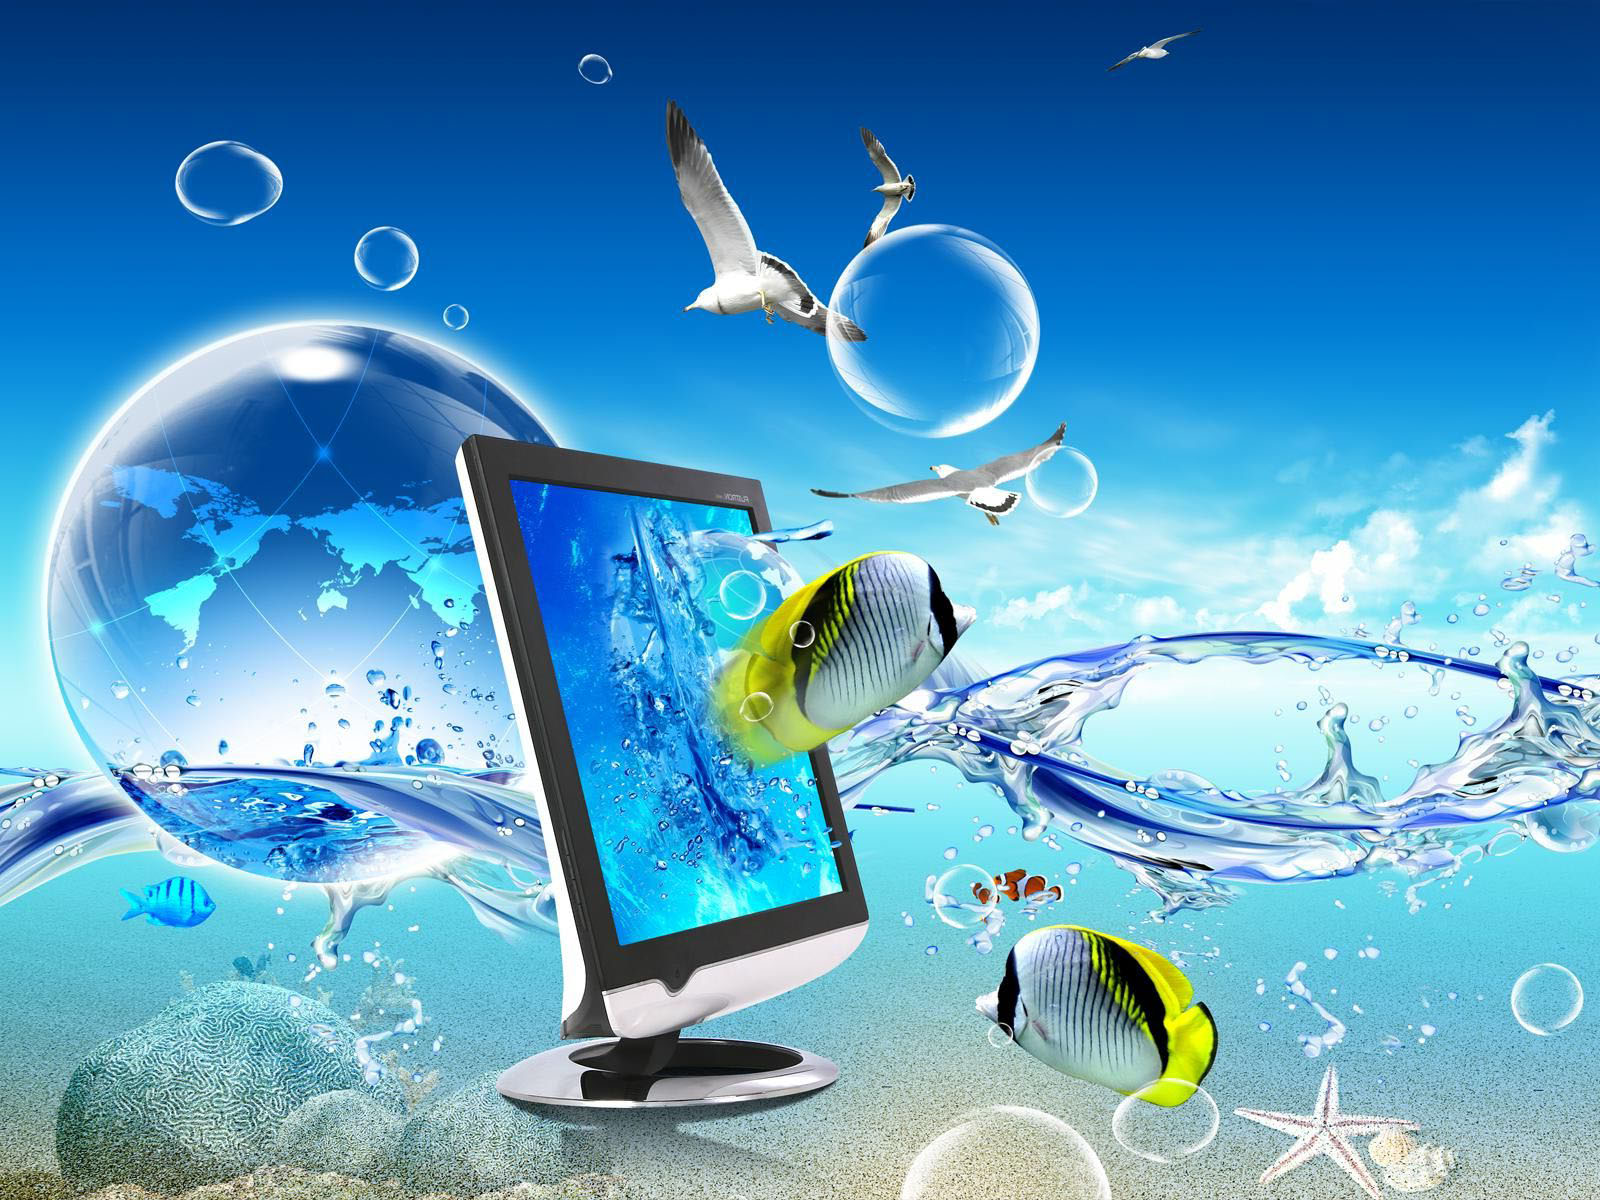 best computer wallpapers hd,water,technology,operating system,atmosphere,electronic device